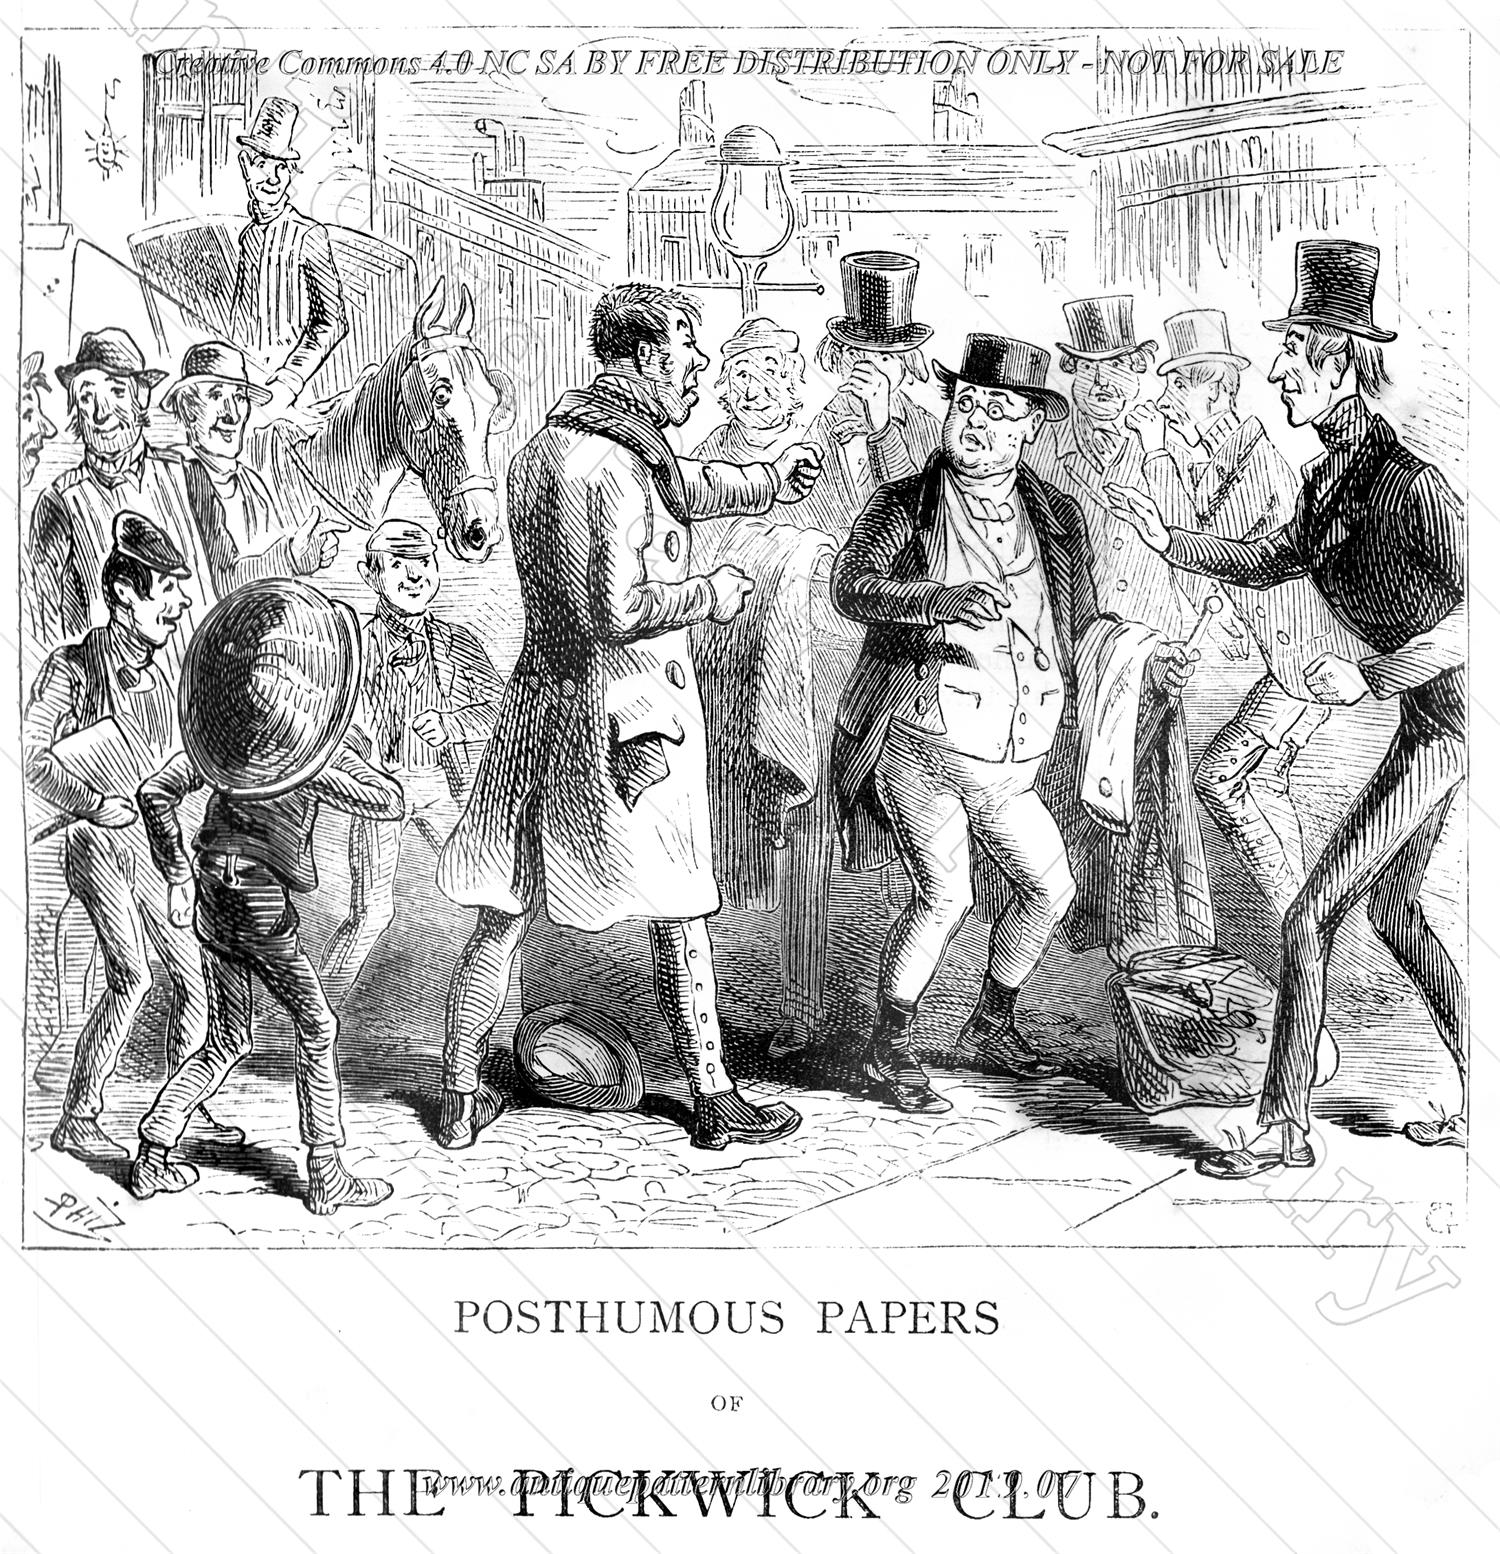 I-FW003 The Pickwick Papers